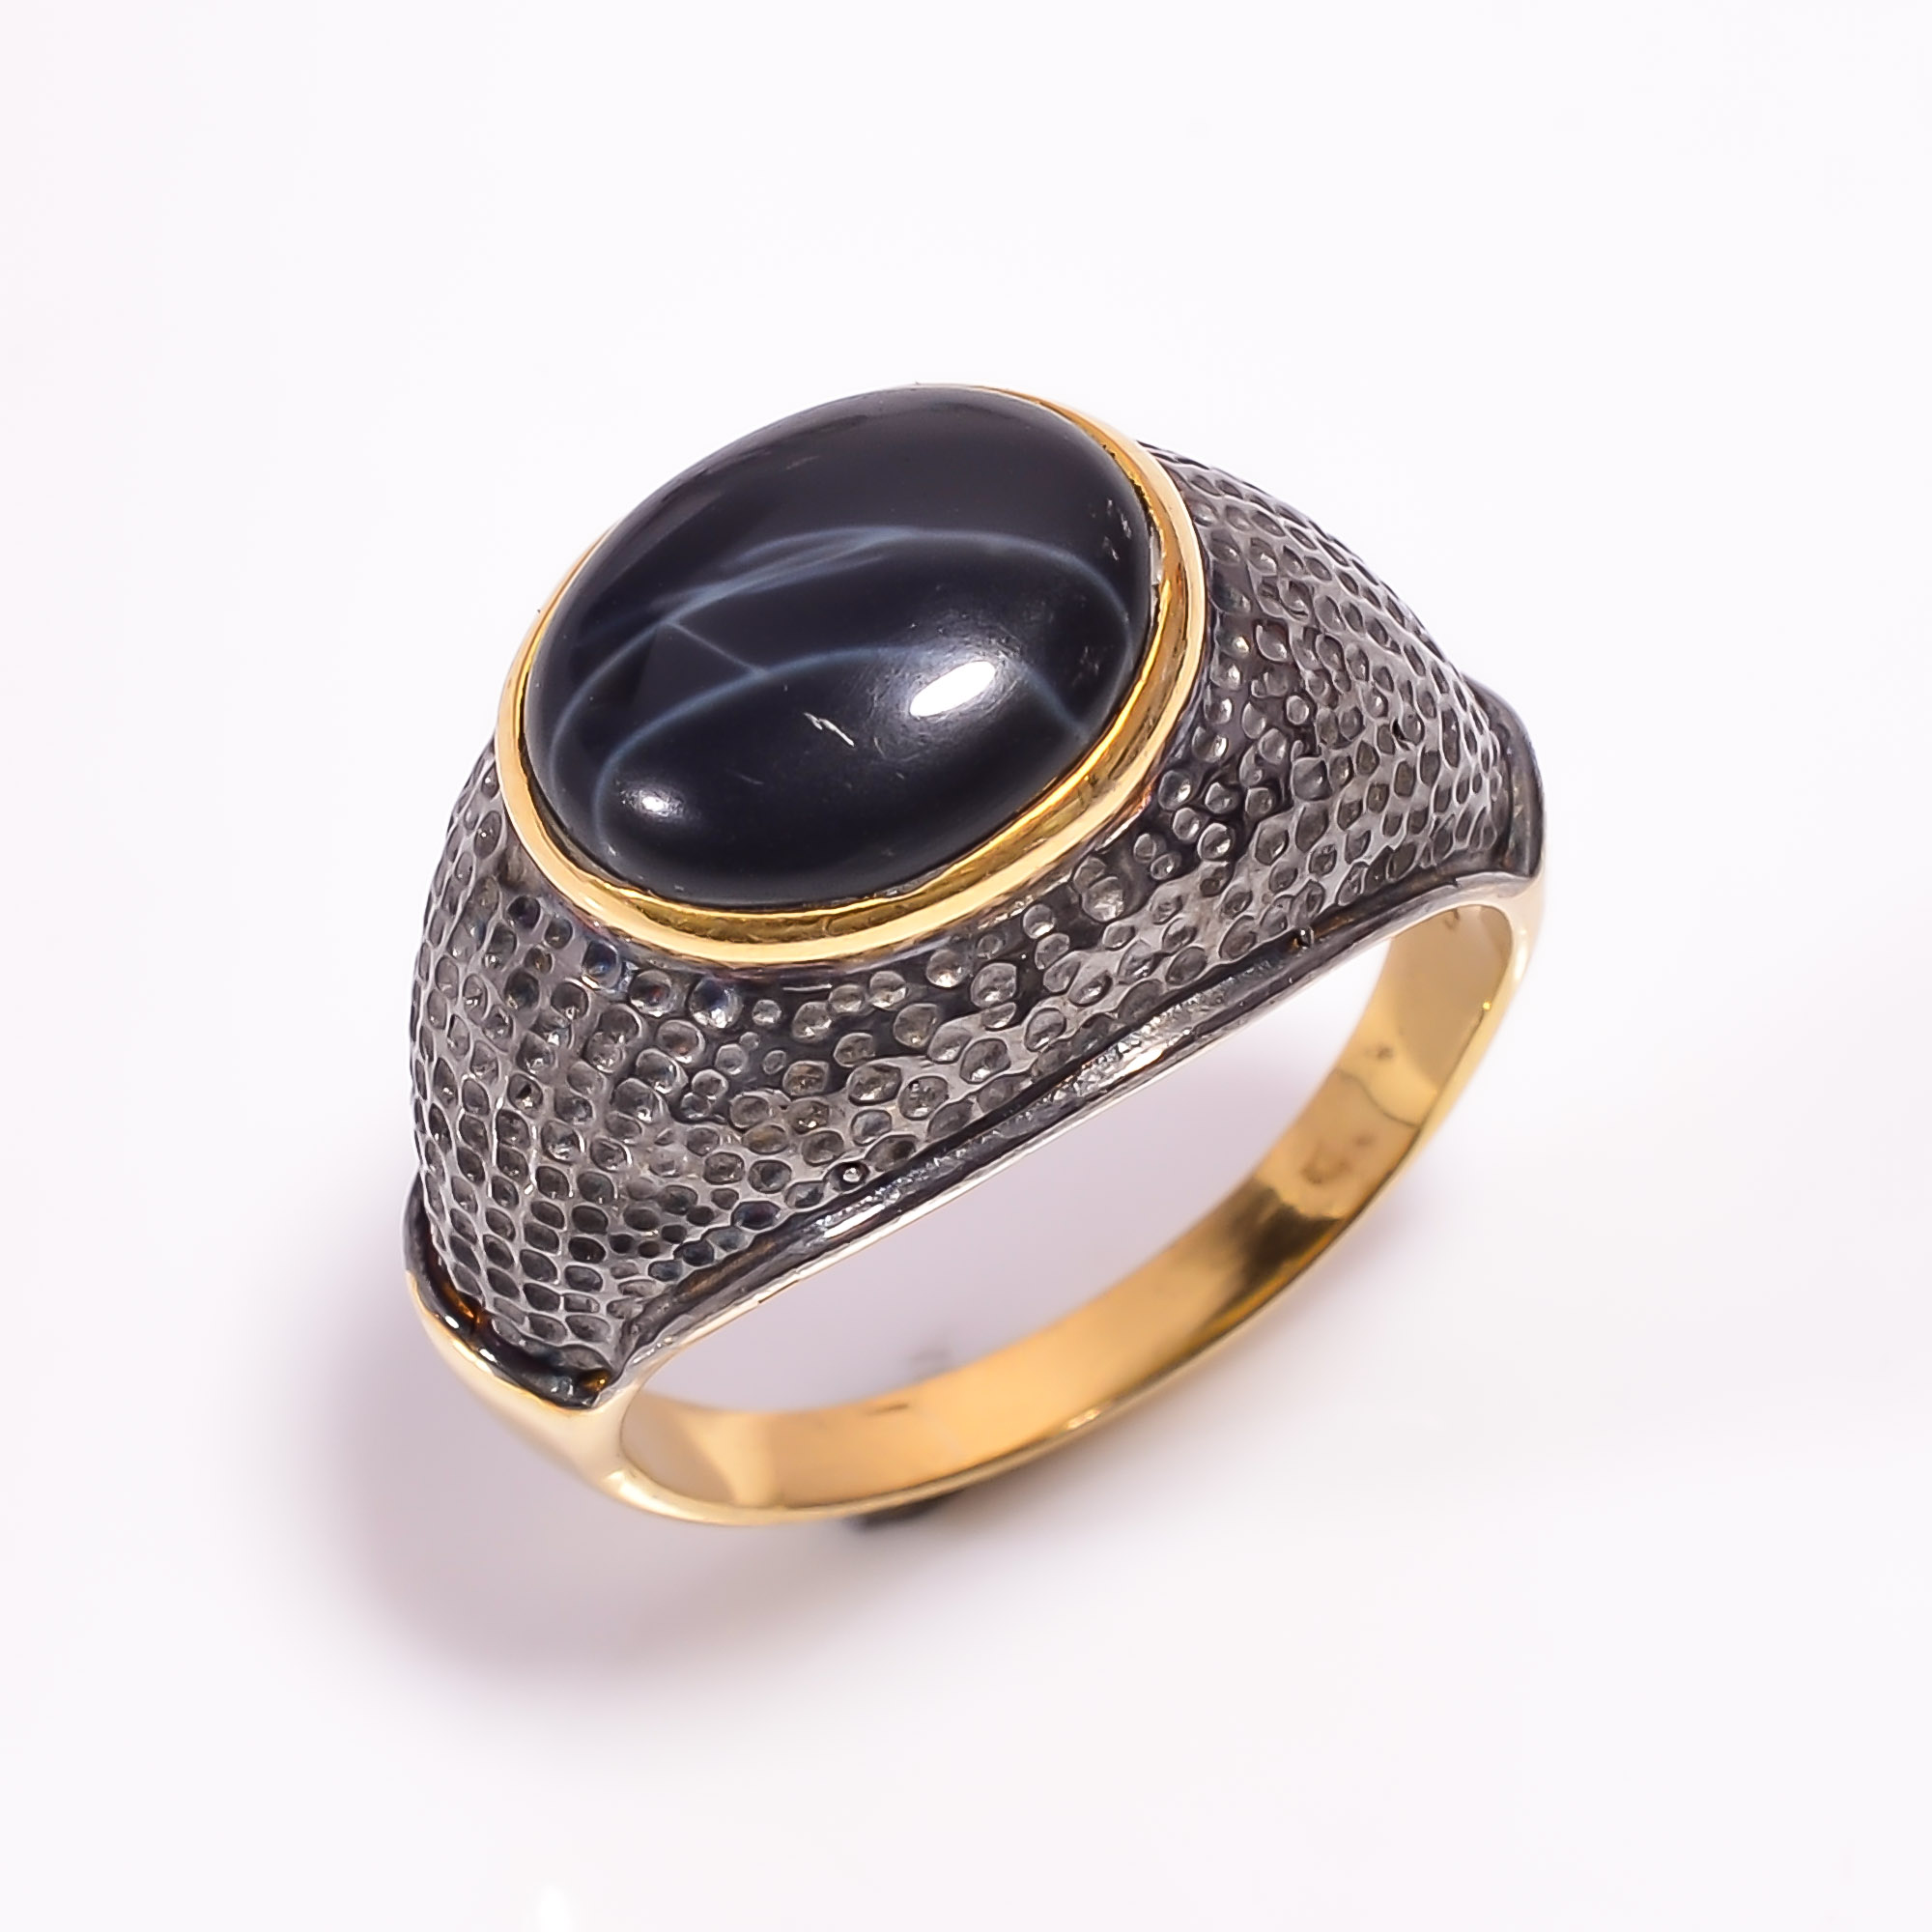 925 Sterling Silver Gold Plated & Black Rhodium Two Tone Spider Web Jasper Ring Size US 9.25